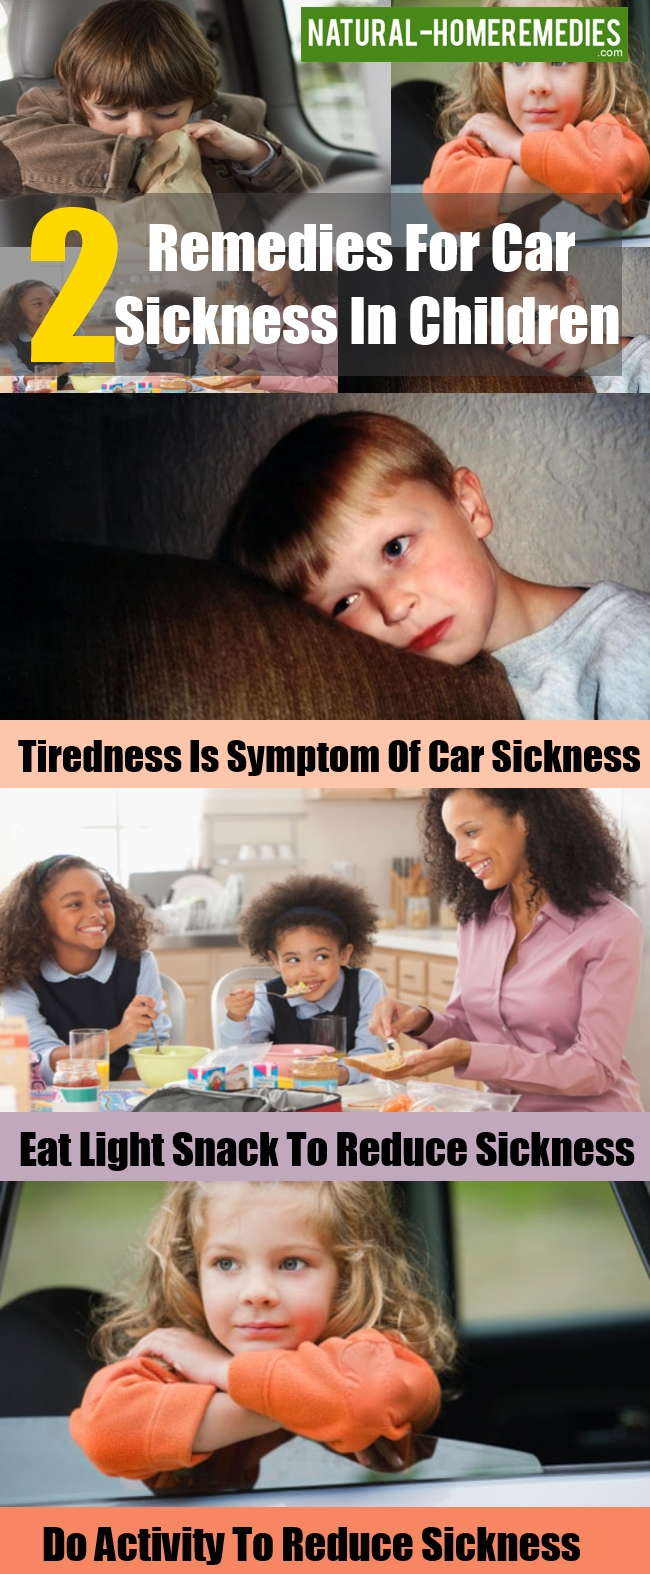 Remedies For Car Sickness In Children